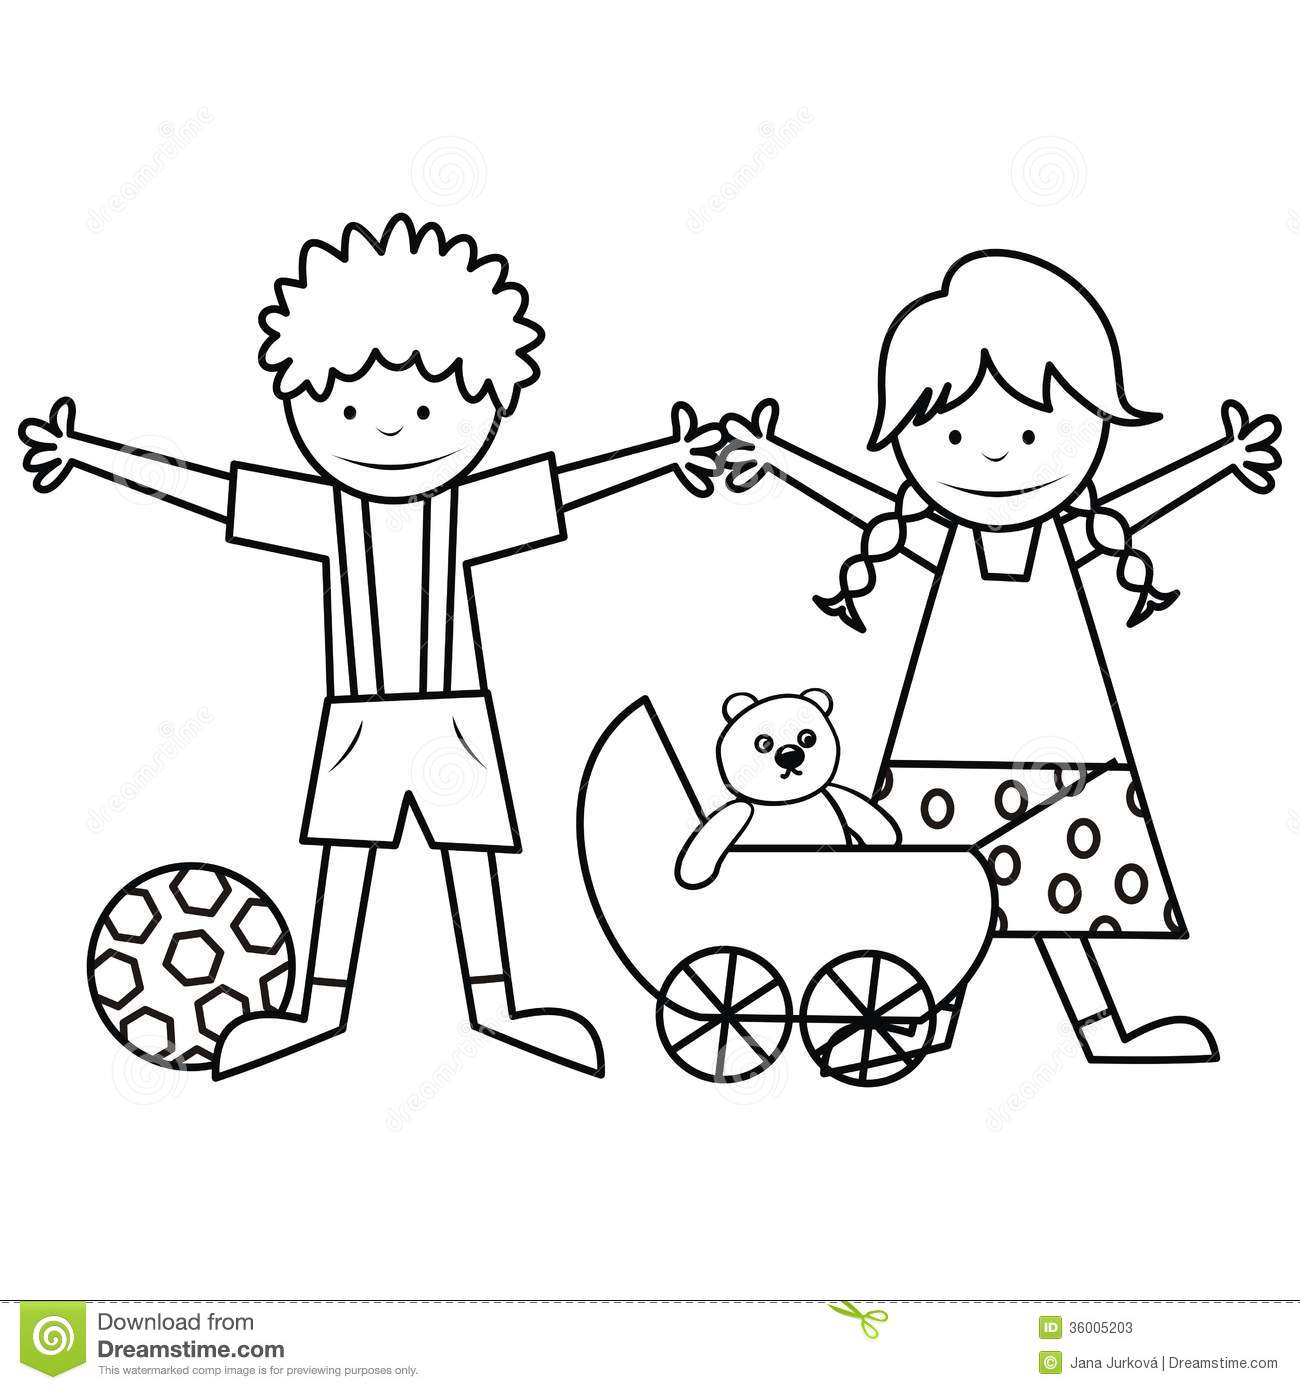 kids and toys coloring book stock vector illustration of kids